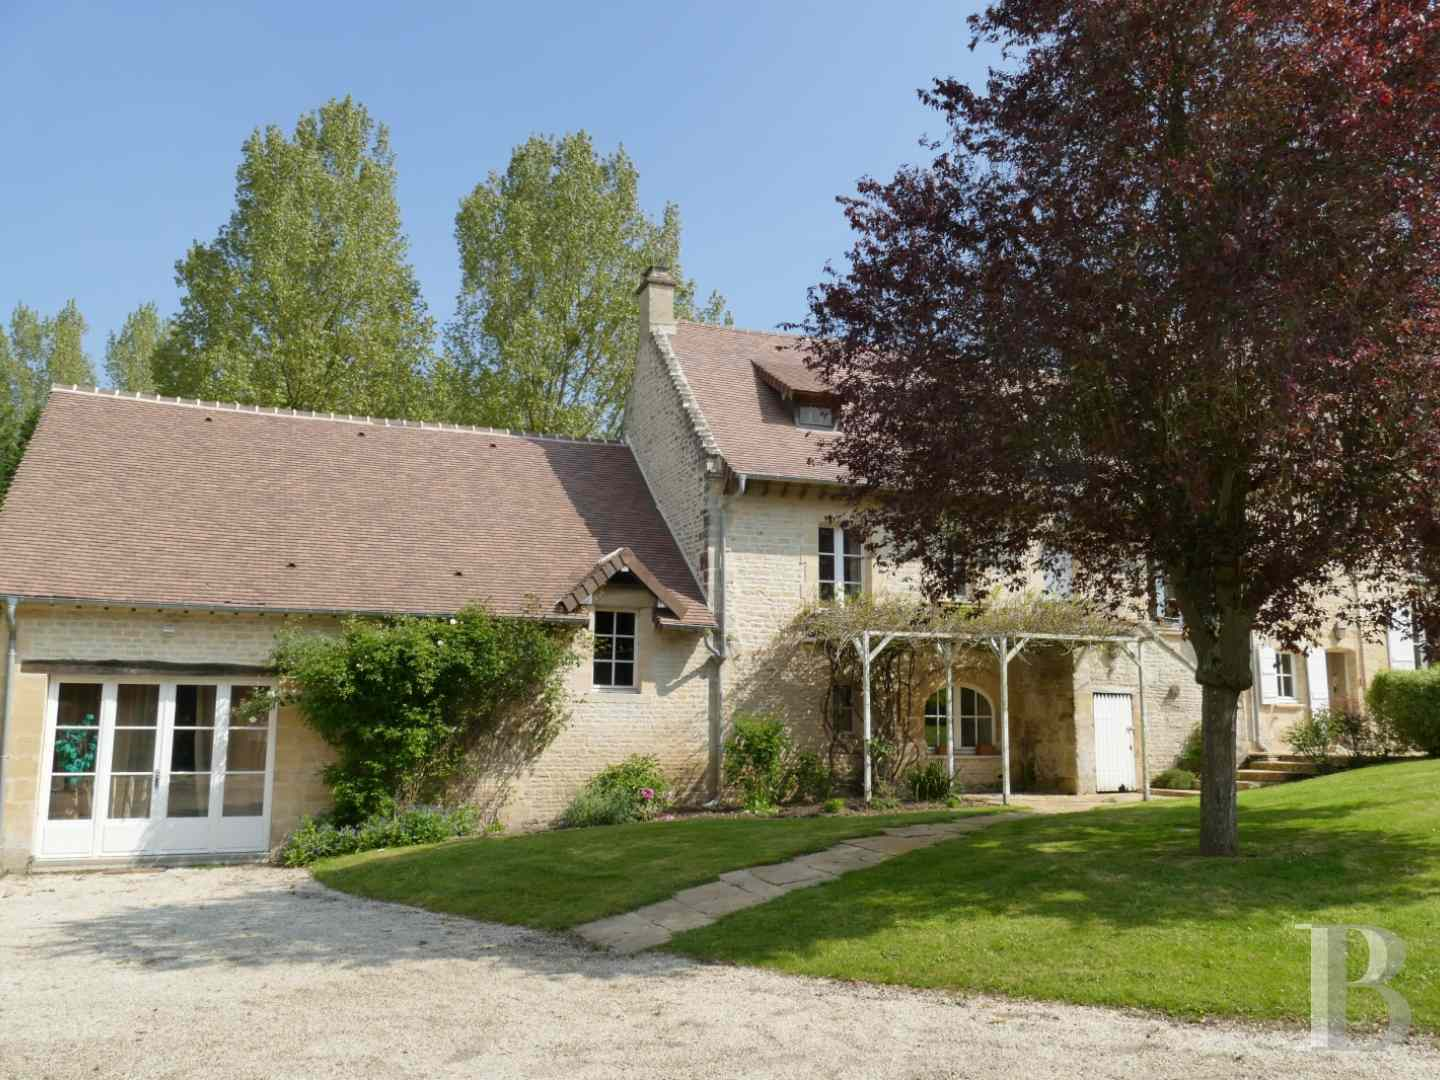 France mansions for sale lower normandy 4025  - 4 zoom